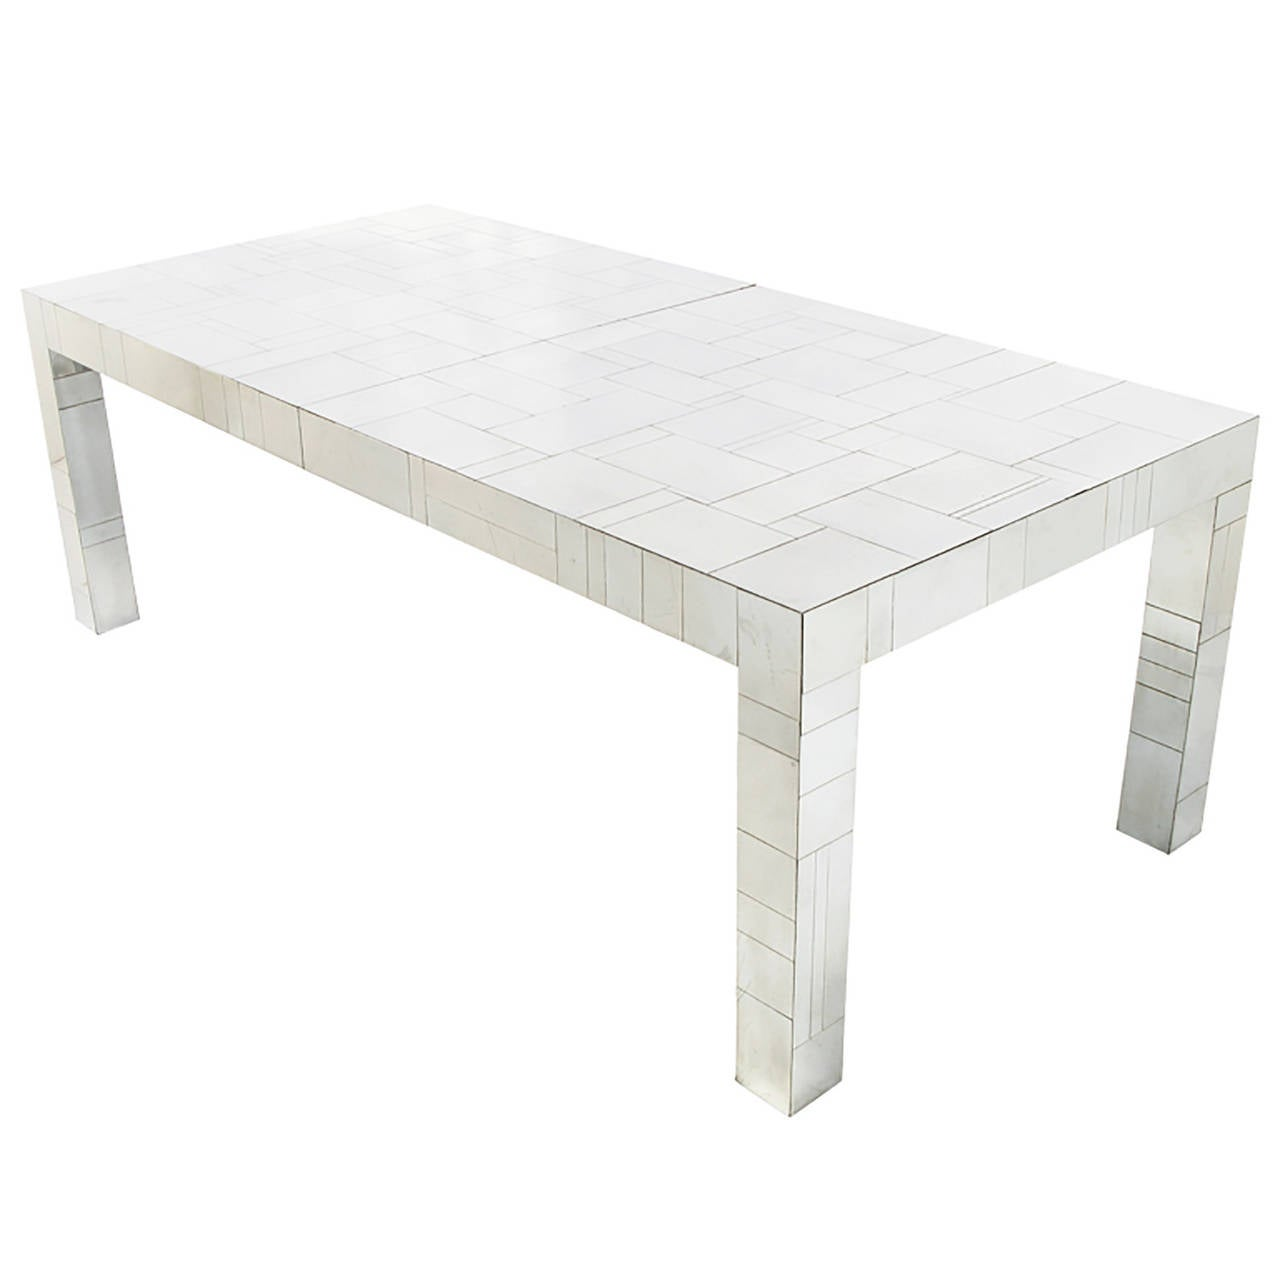 Long Dining Tables For Sale: Paul Evans Cityscape Long Dining Table For Sale At 1stdibs